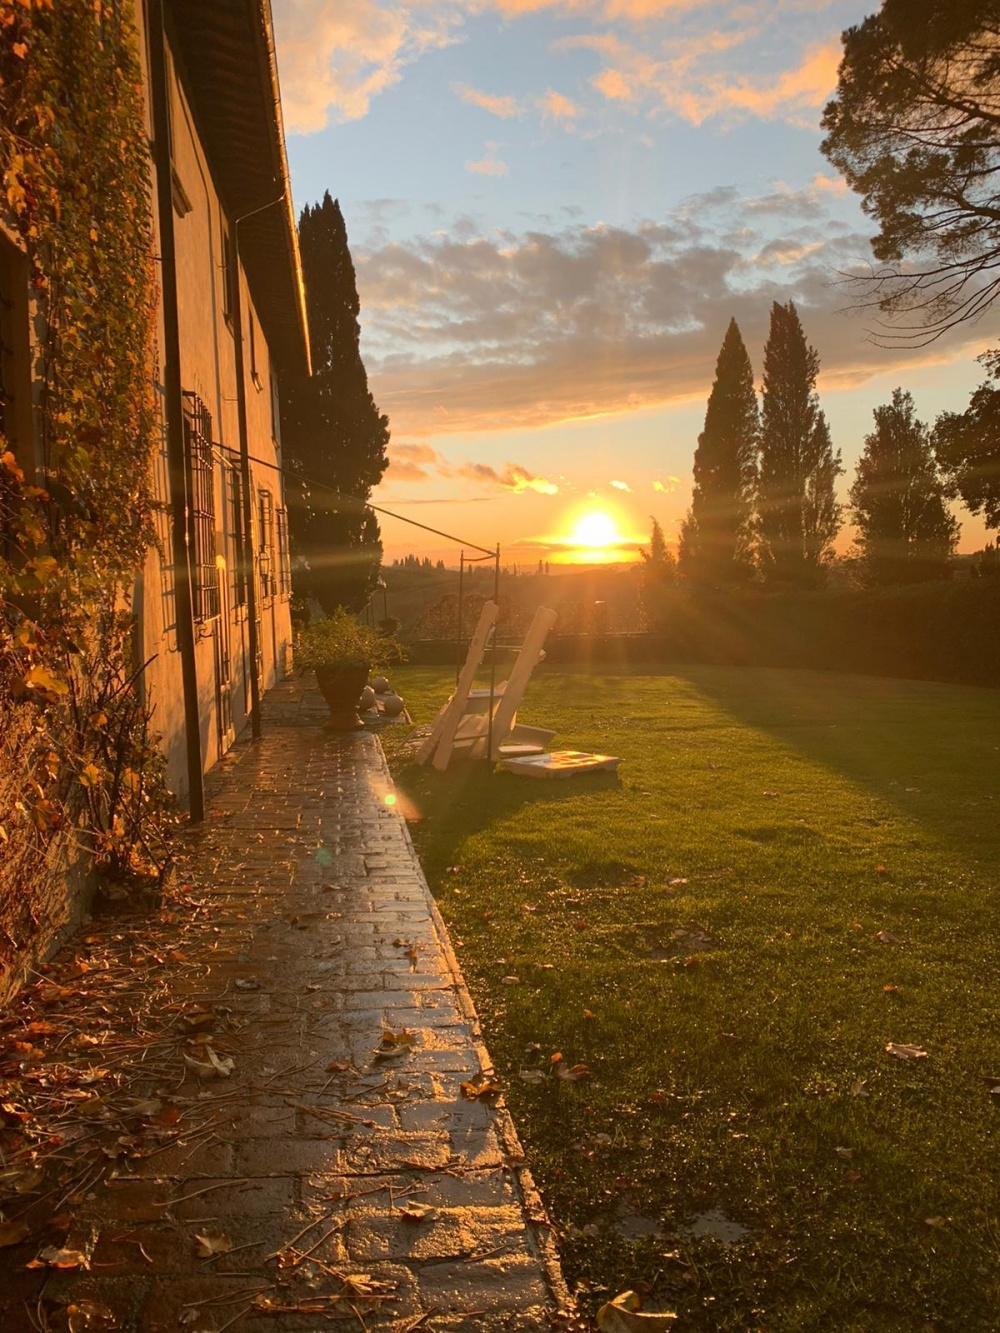 sunset in a villa for wedding in tuscany